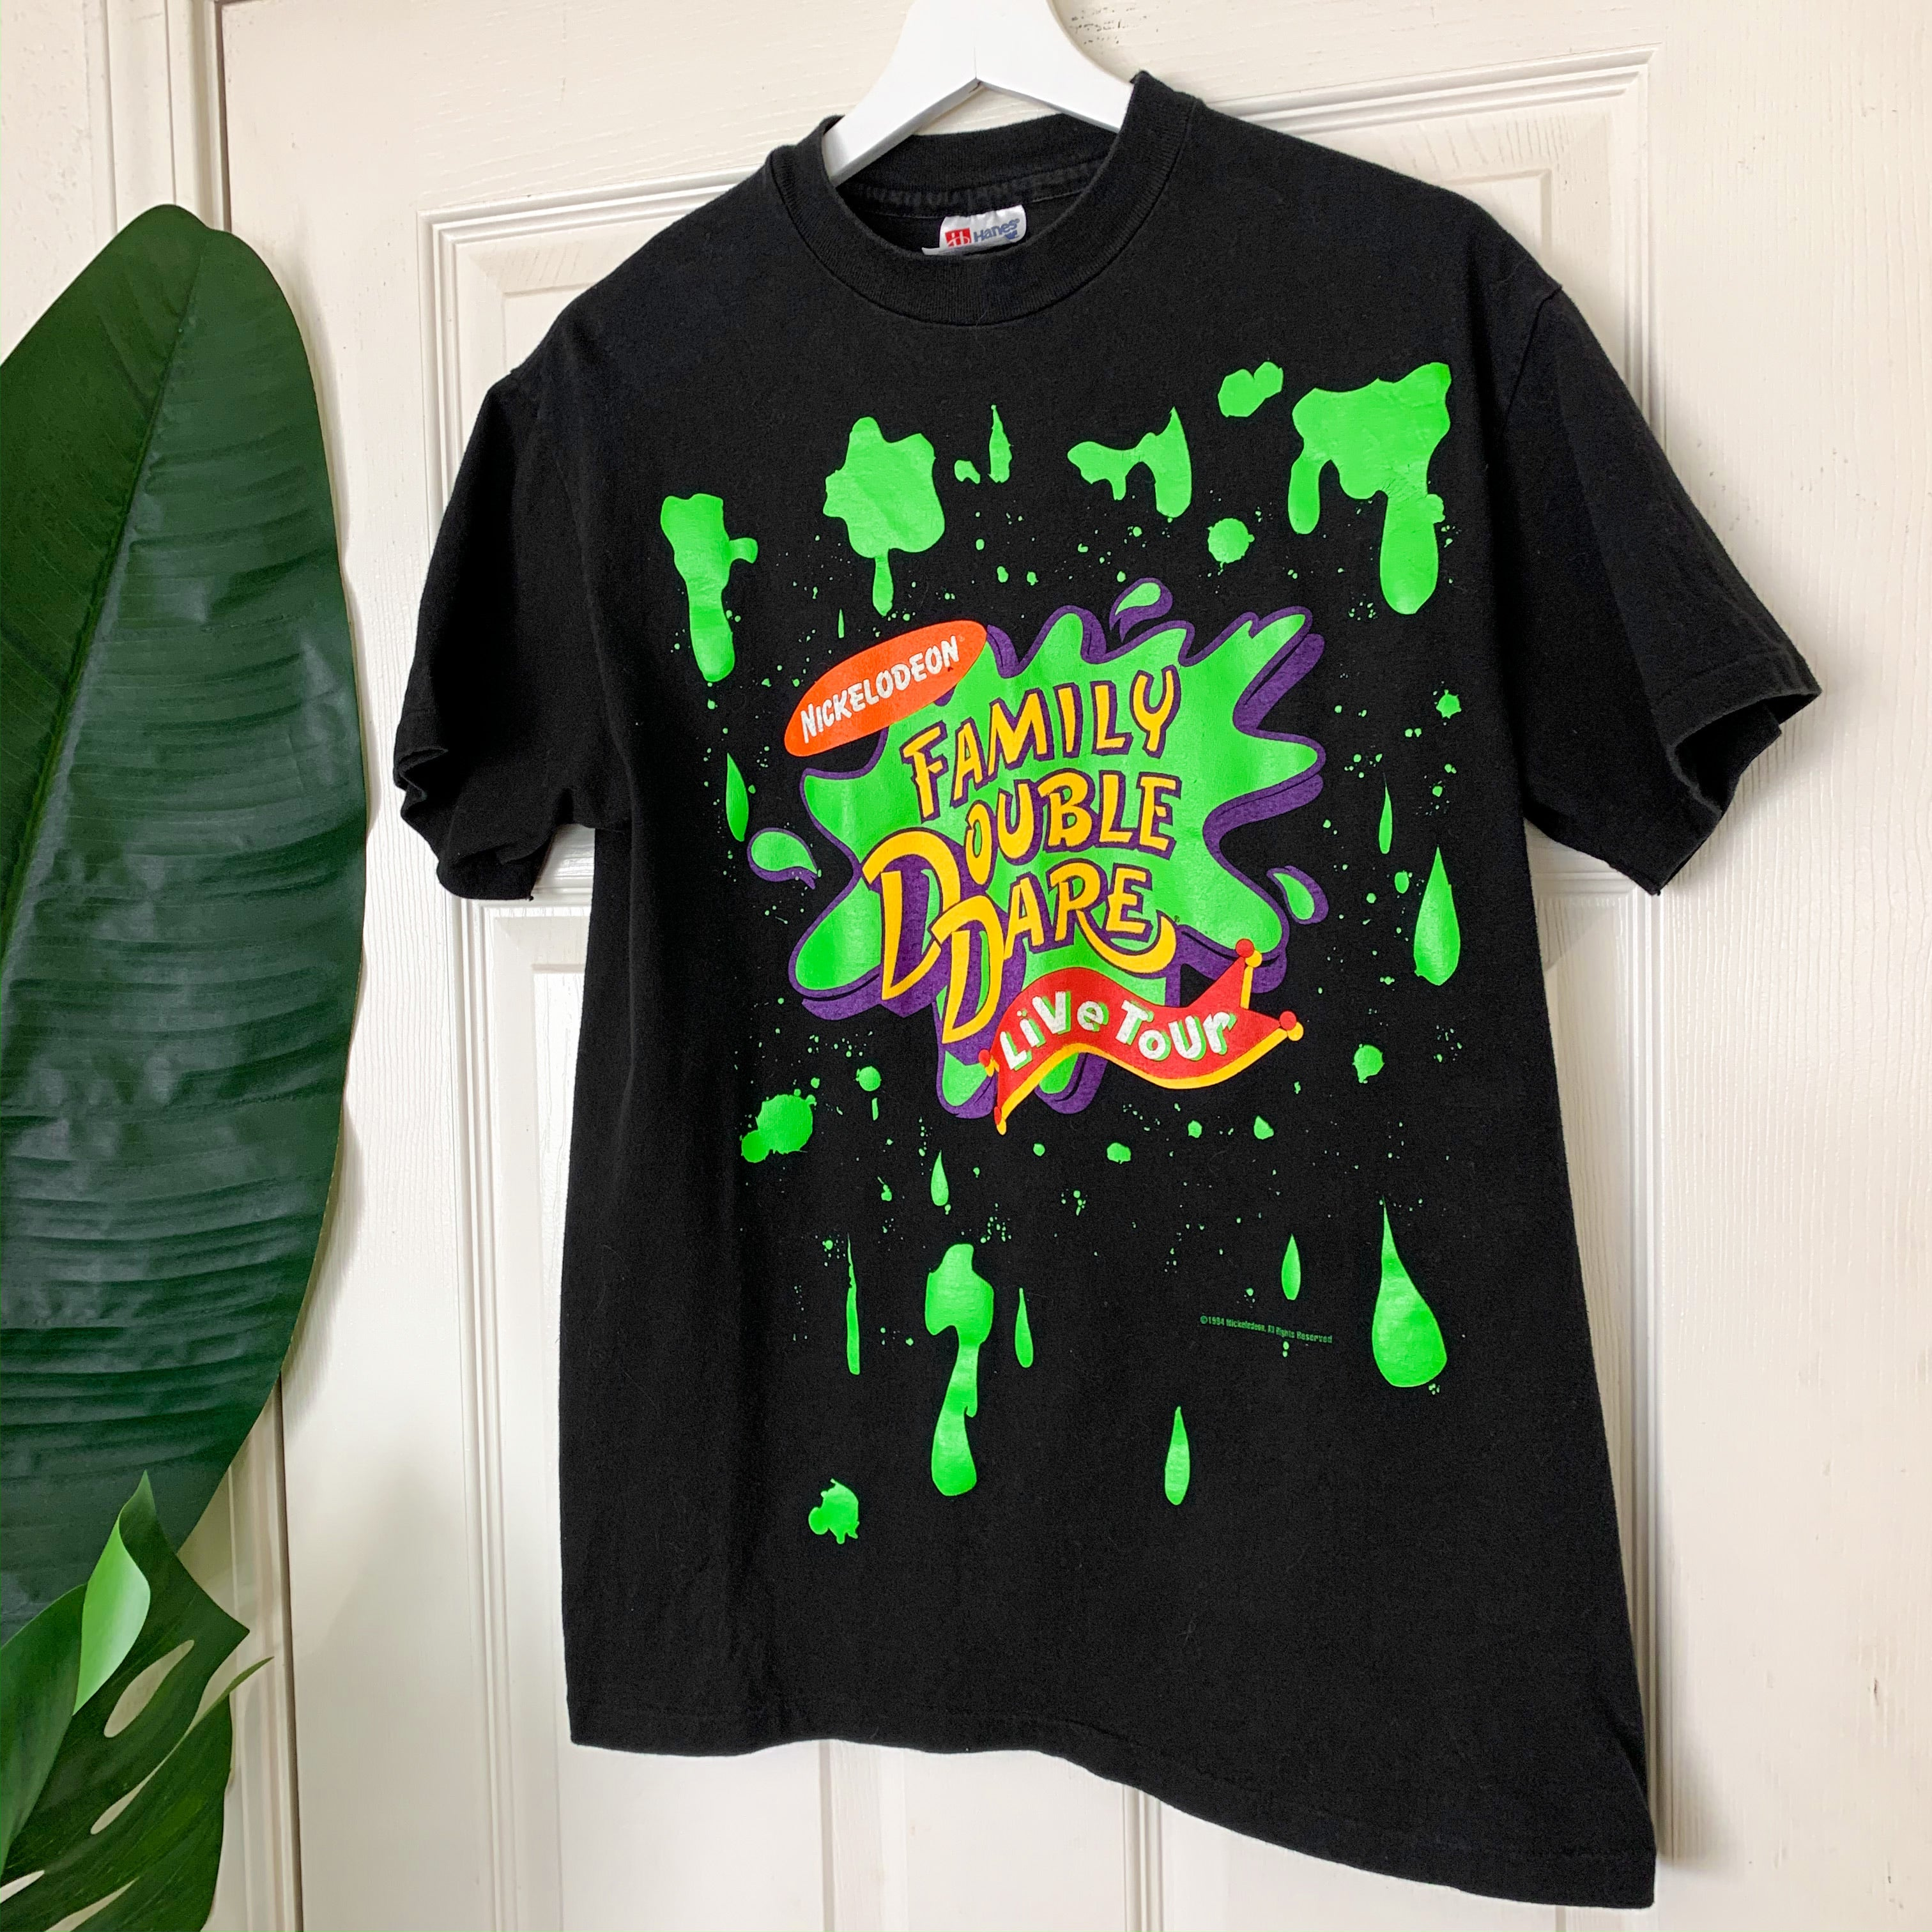 1994 Nickelodeon Family Double Dare Tour T-Shirt